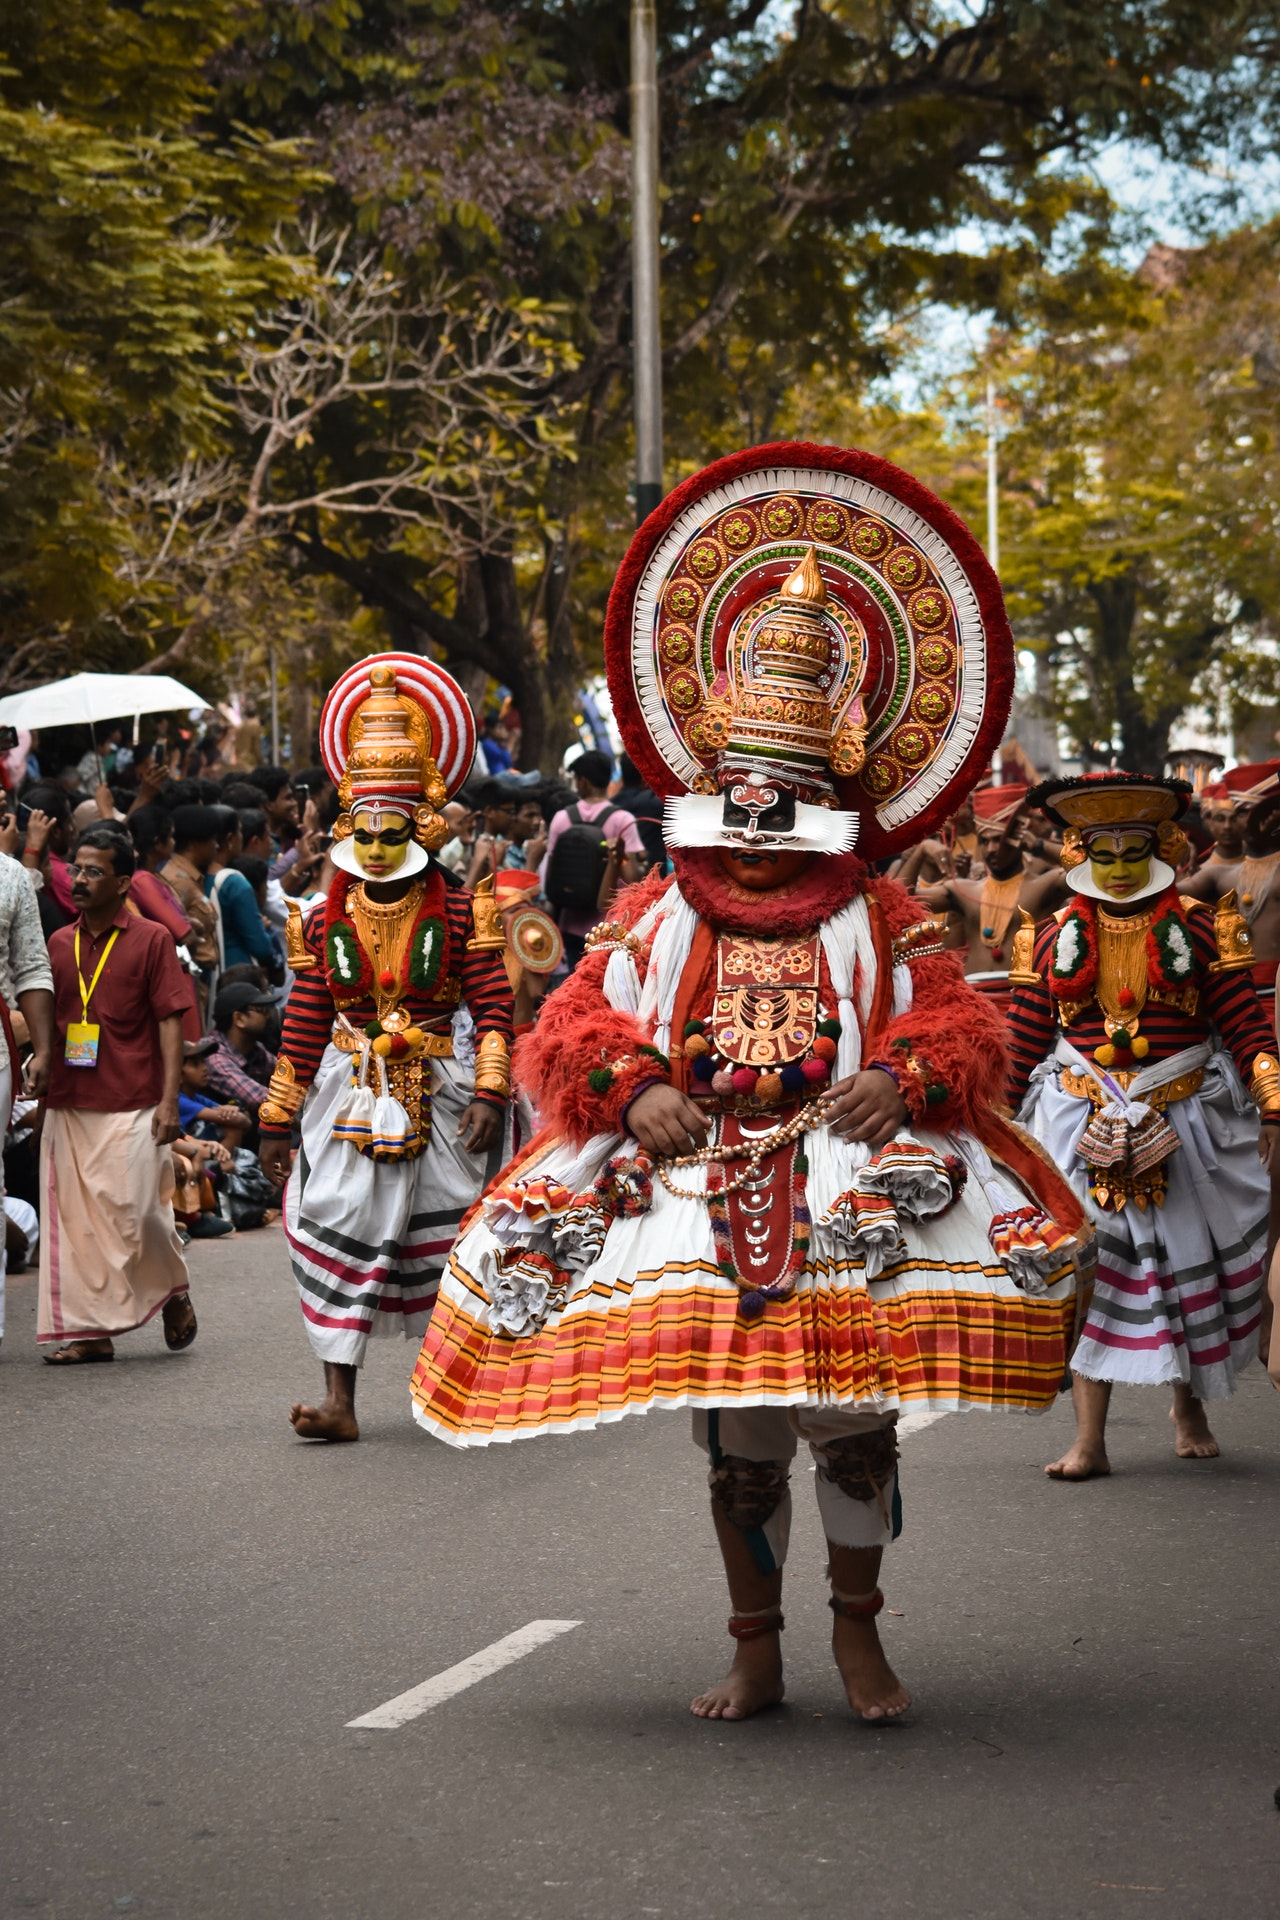 Tourism: Kerala best performing state in India